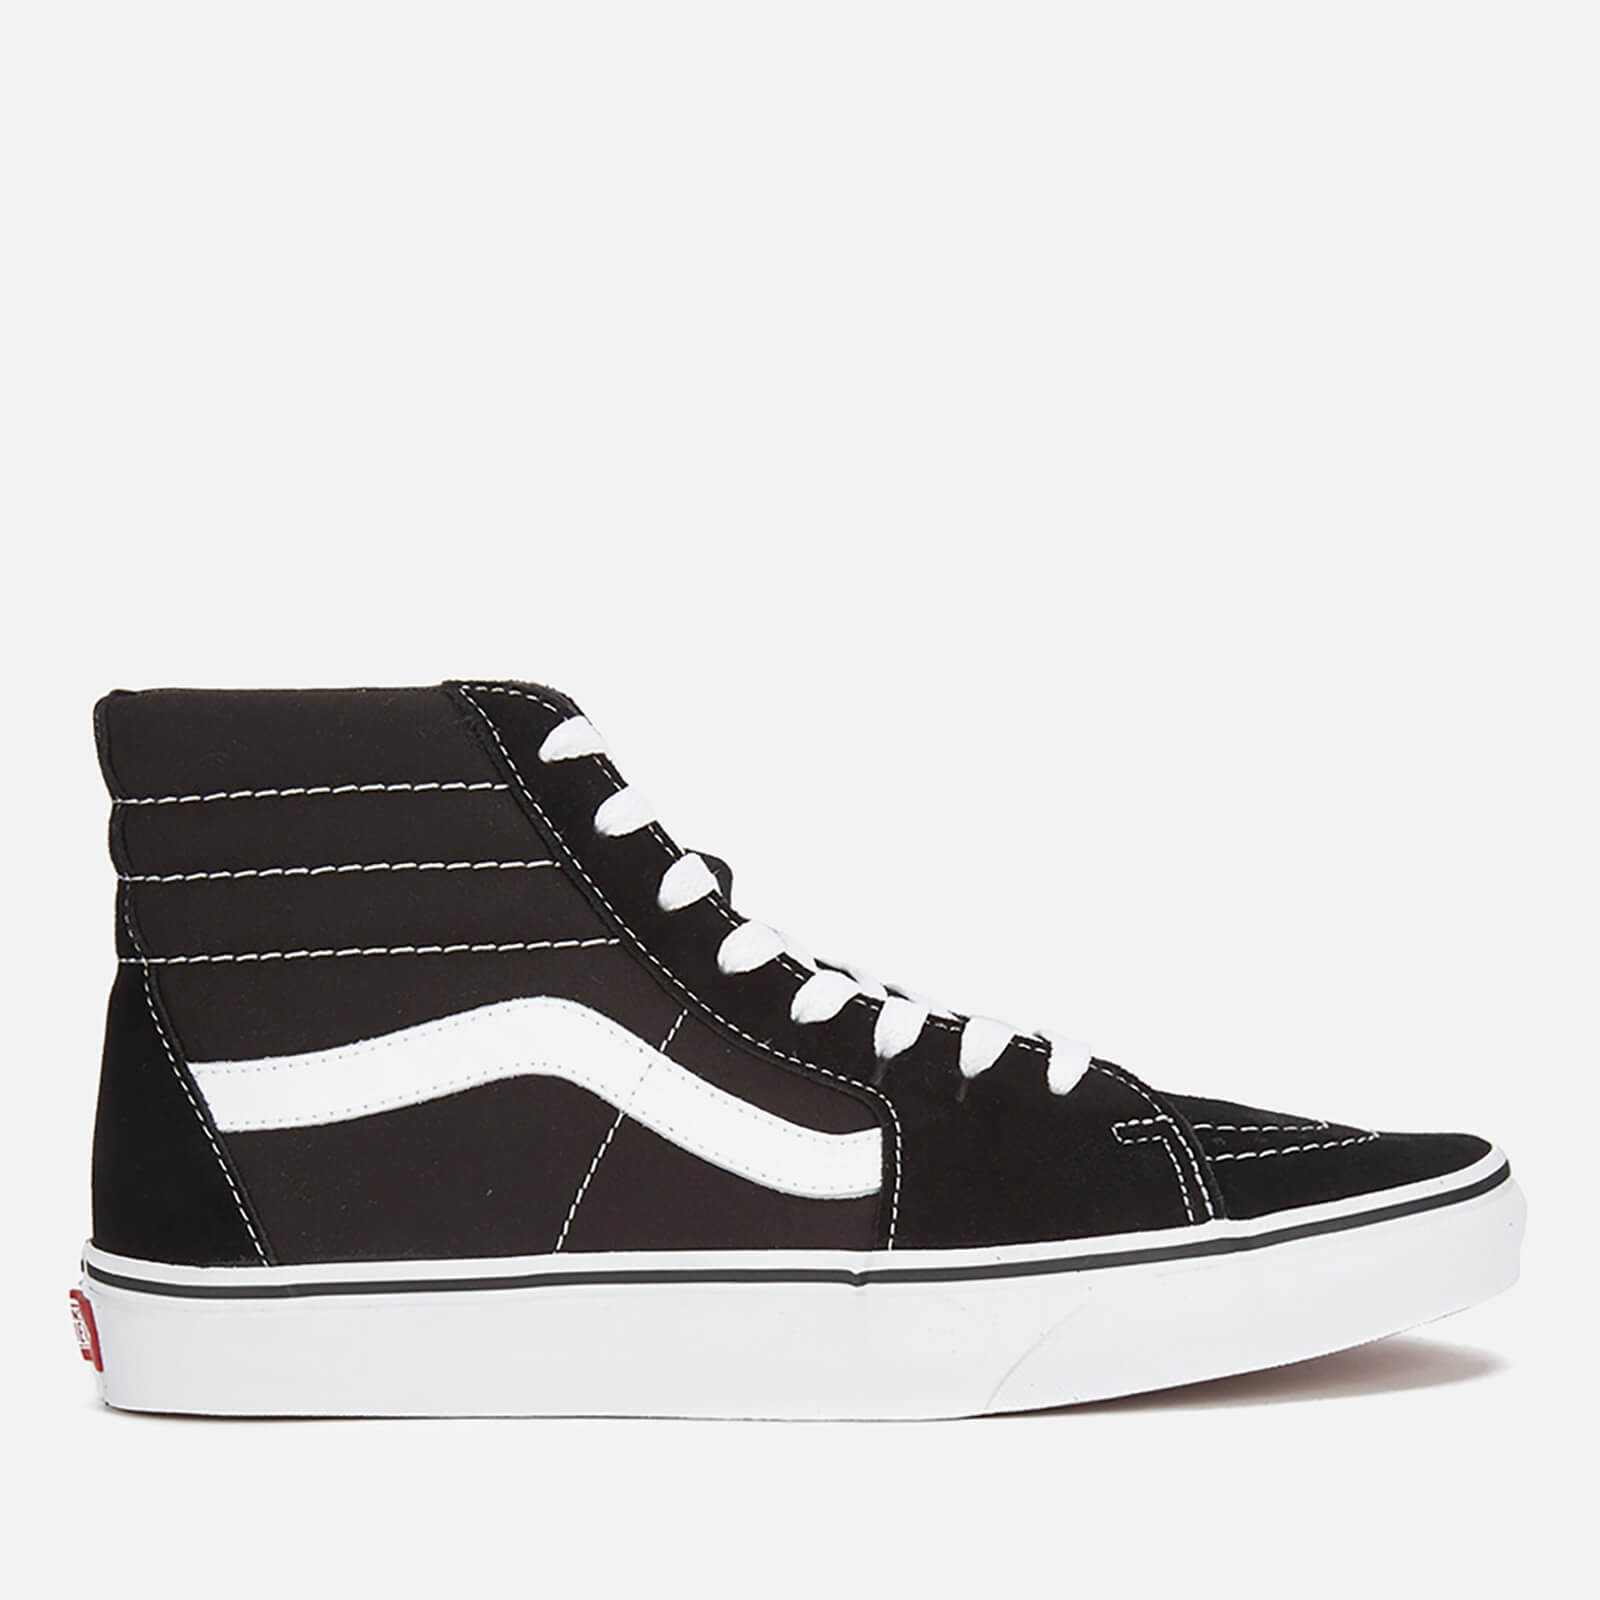 02dba3c57dde59 Vans Sk8 Hi-Top Trainers - Black White